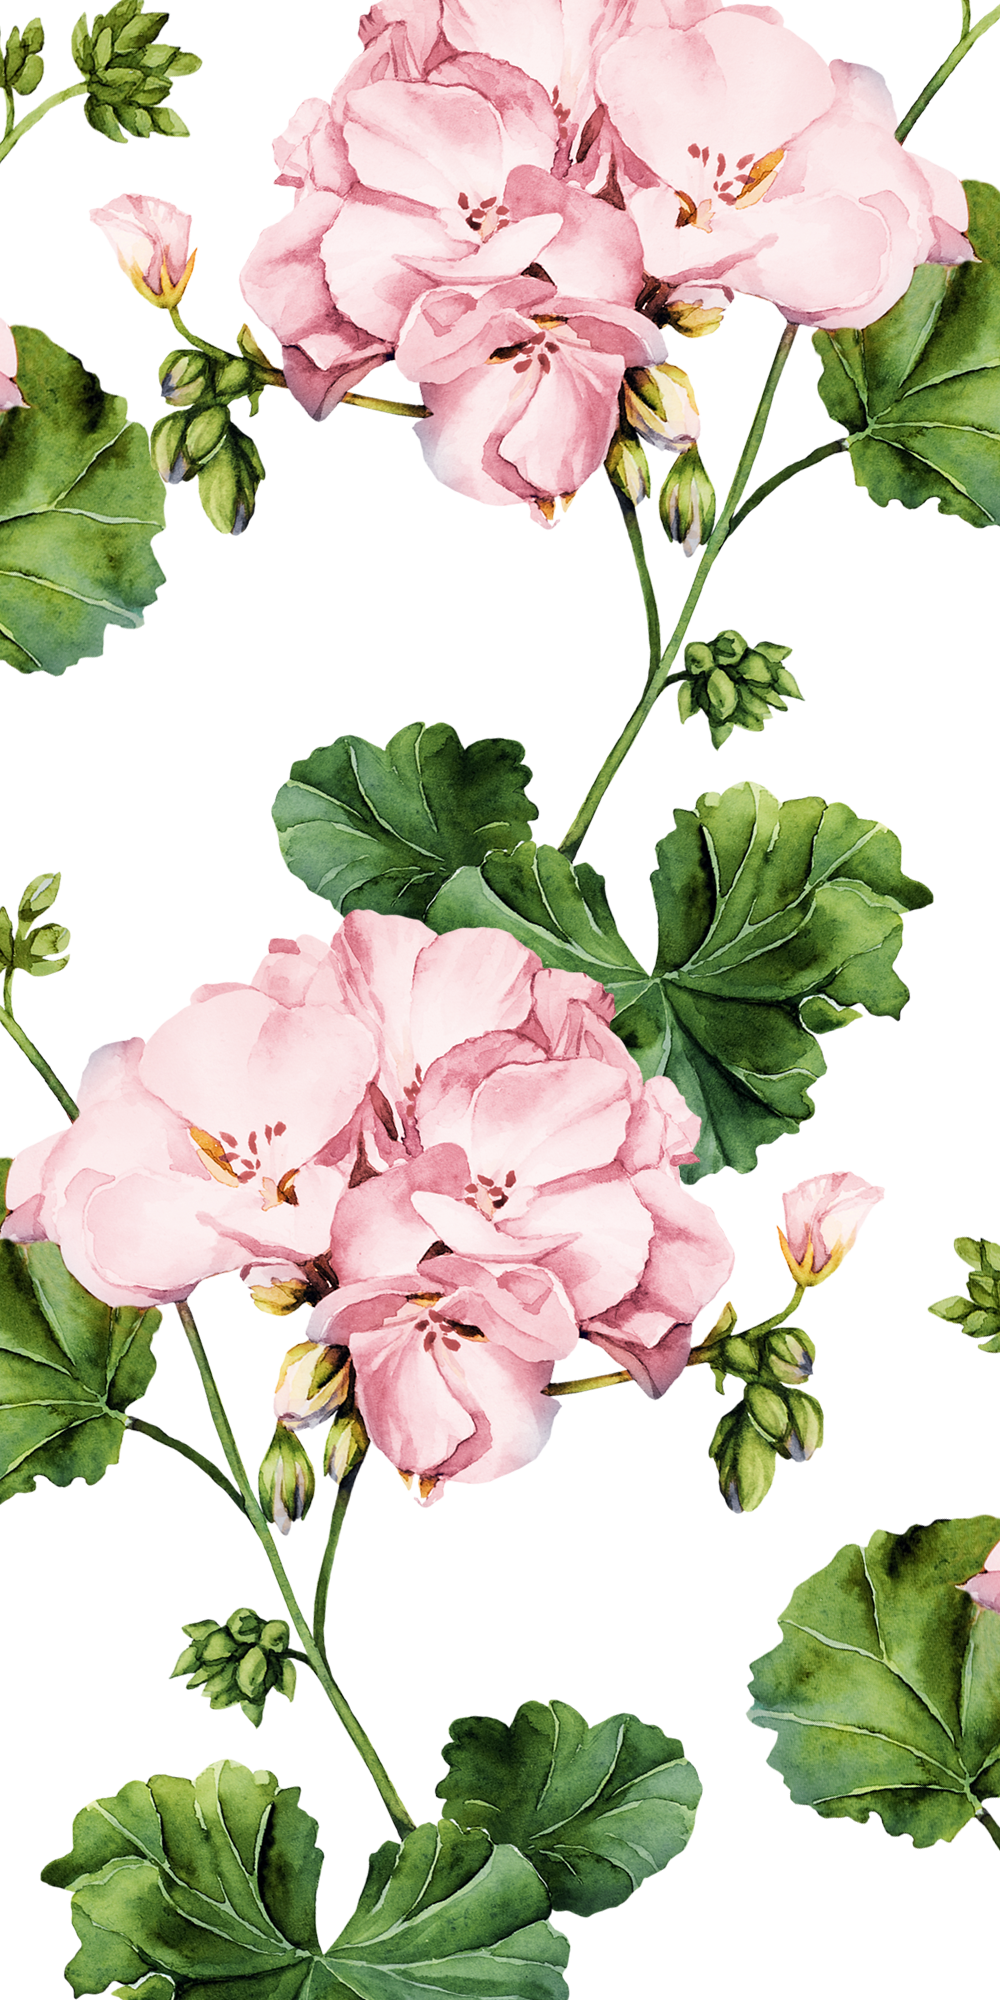 How About A New Floral Wallpaper For Your Iphone Casetify Flowers Geranium Art Design Flower Painting Botanical Floral Art Cute Patterns Wallpaper